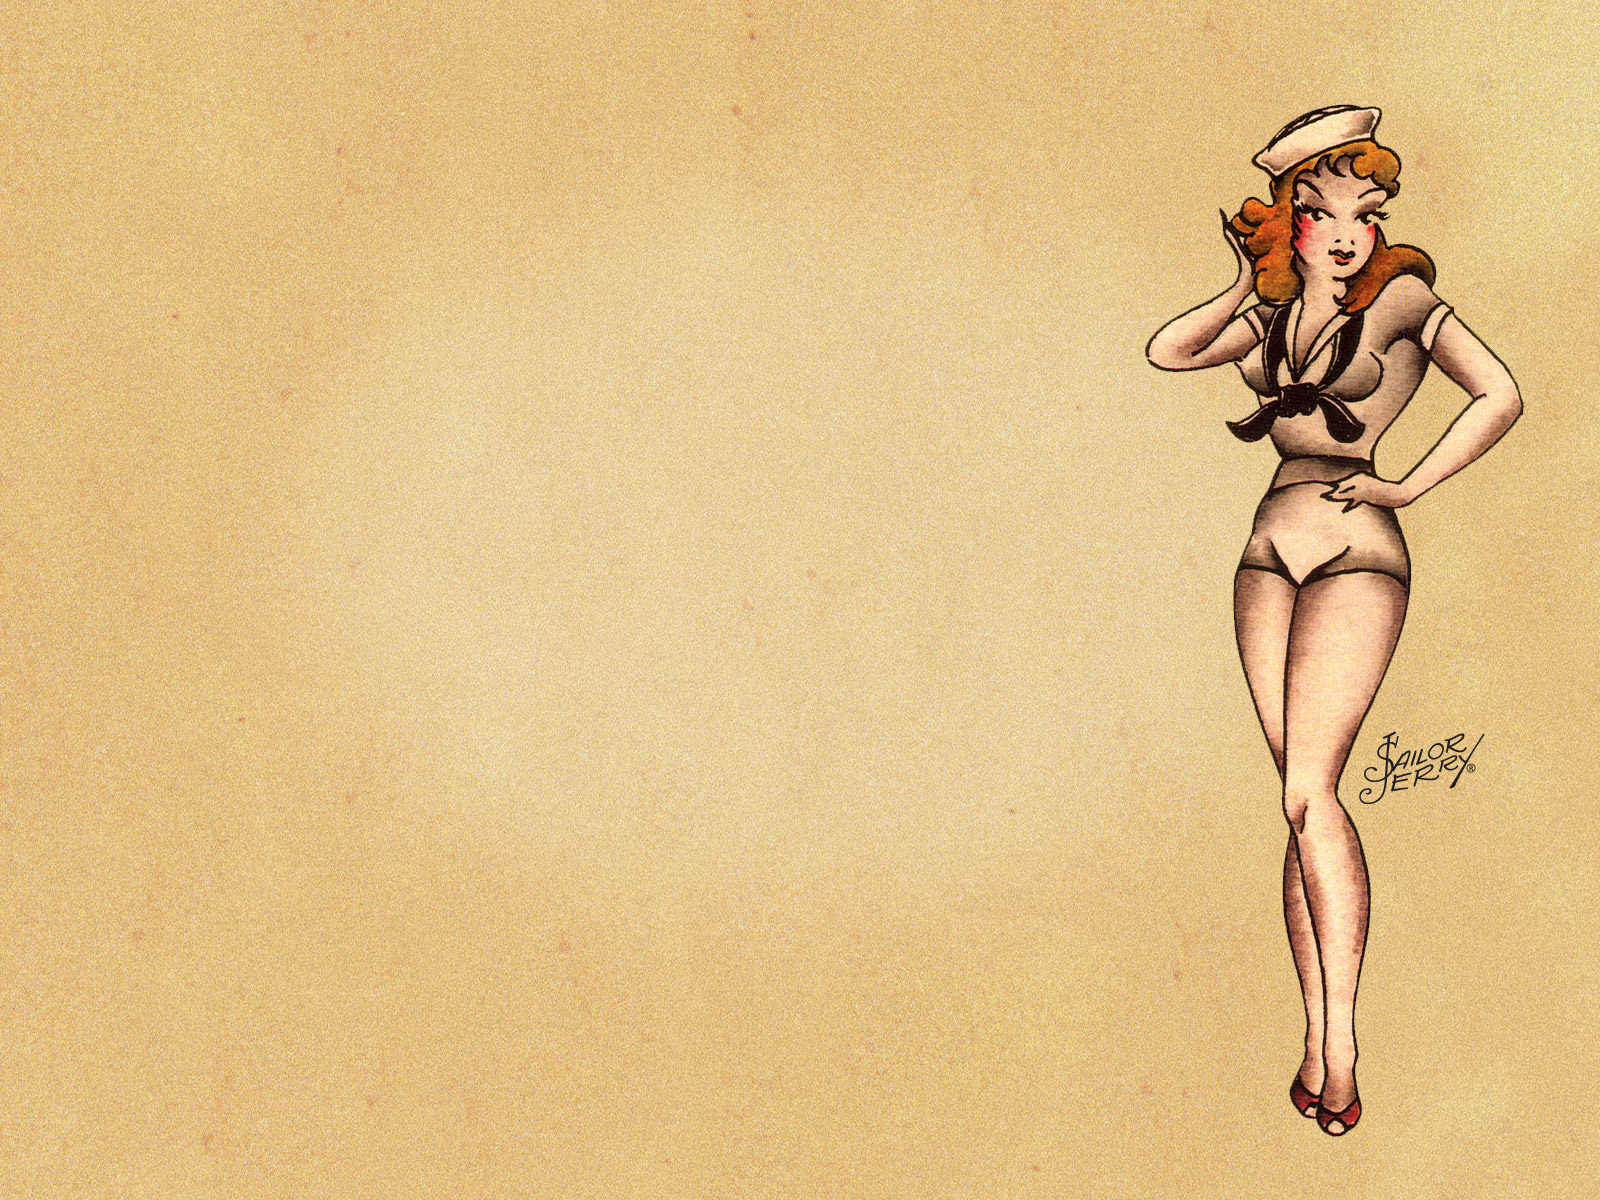 Betty Boop Wallpaper For Computer 3d June Softly Biker Blog Happy 100th Birthday Norman